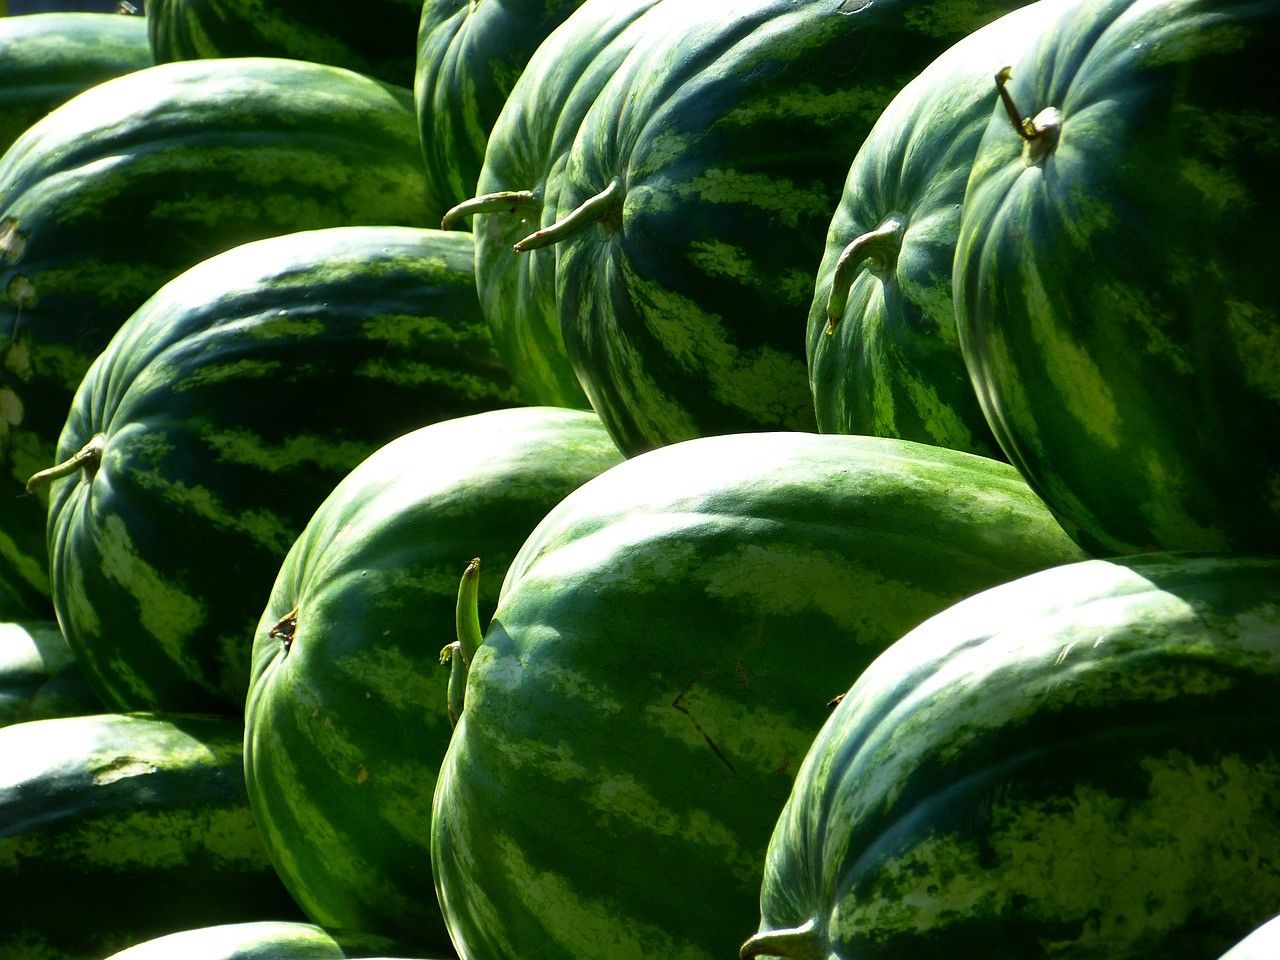 melons 197025 1280